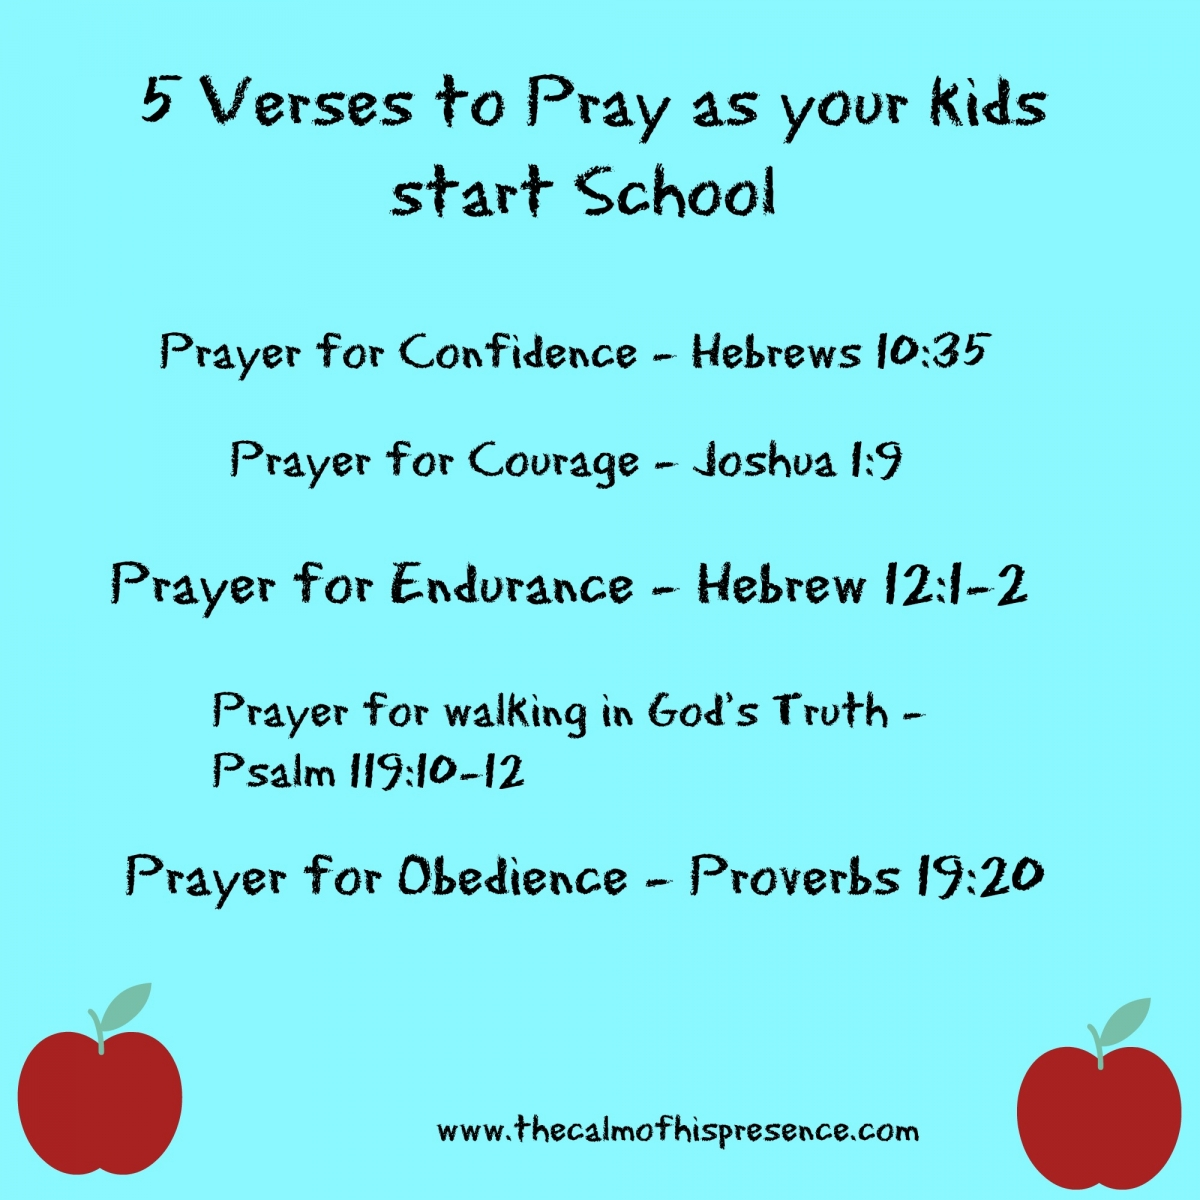 5 Verses to Pray as your kids start school » The calm of ...